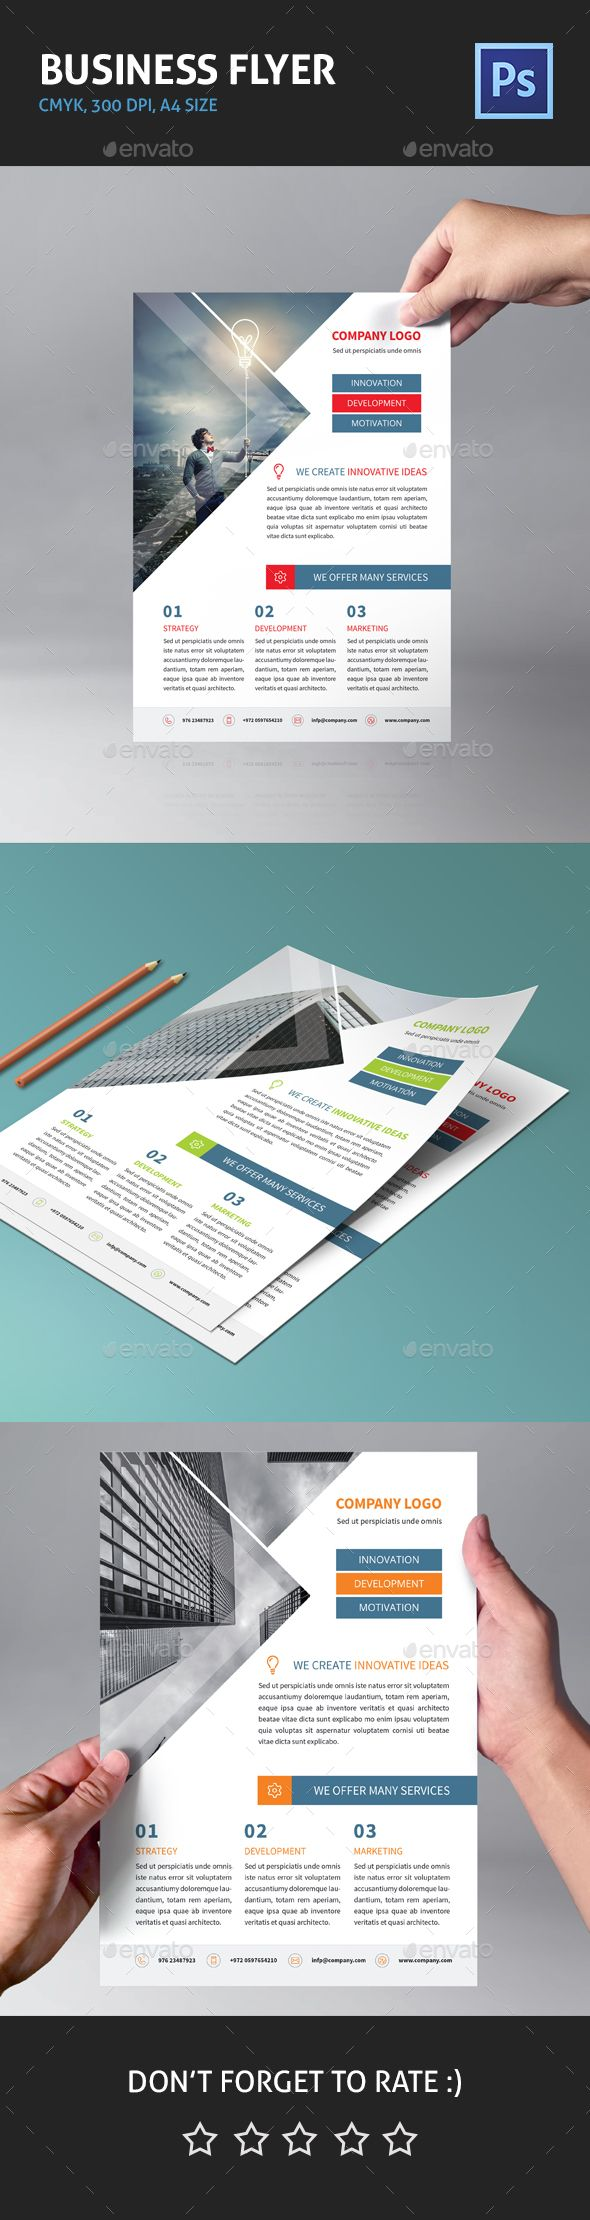 Corporate Business Flyer 01 - Corporate Flyer Template PSD. Download here: http://graphicriver.net/item/corporate-business-flyer-01/15348569?s_rank=3&ref=yinkira